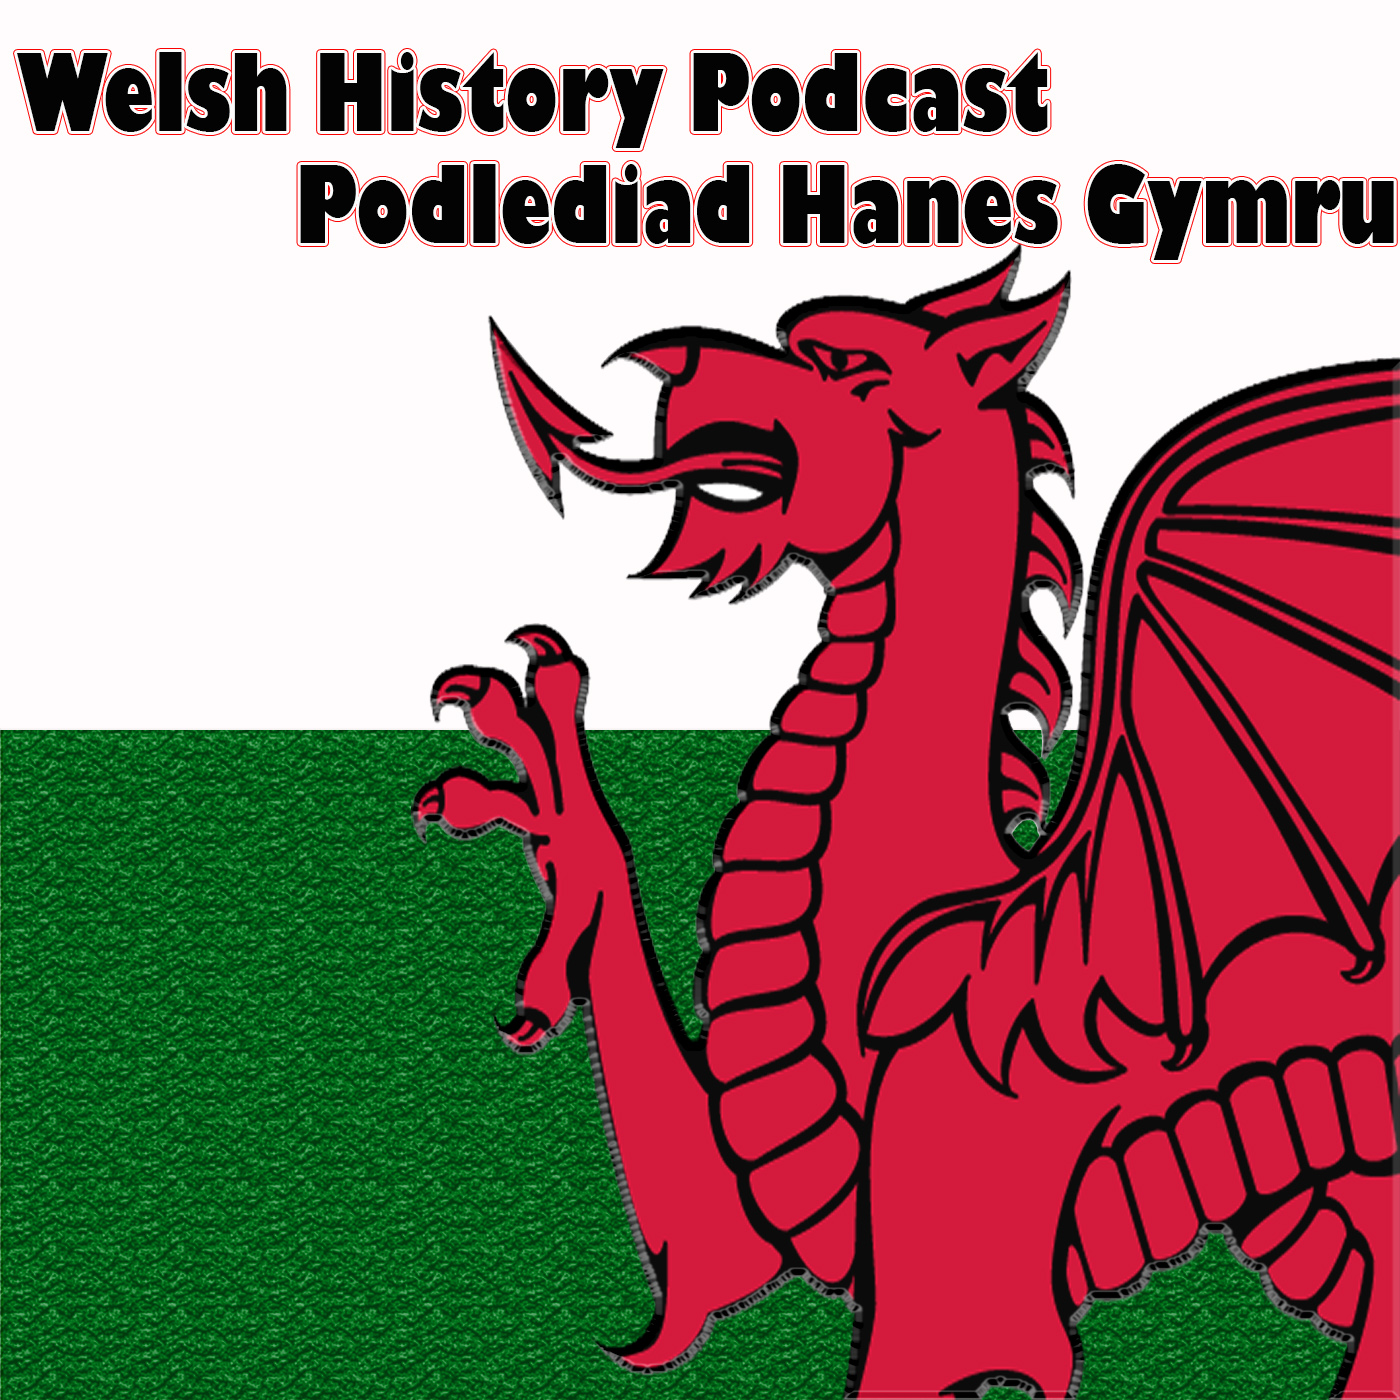 Welsh History Podcast Episode 57 The Noisy New Neighbours